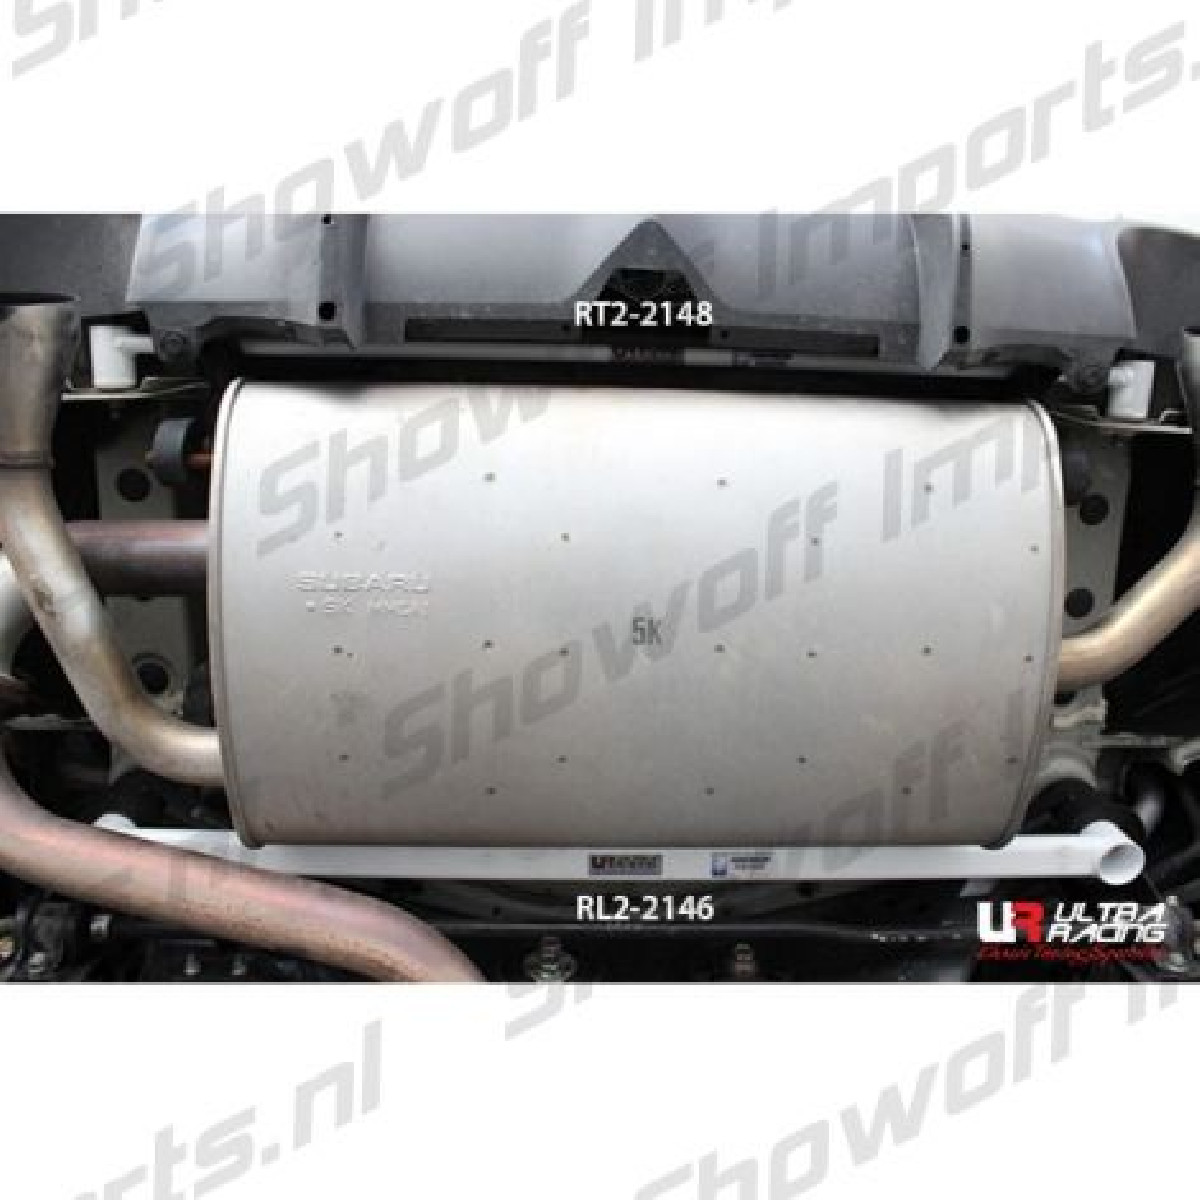 Subaru BRZ  Ultra-R 2P Rear Torsion Bar 2148